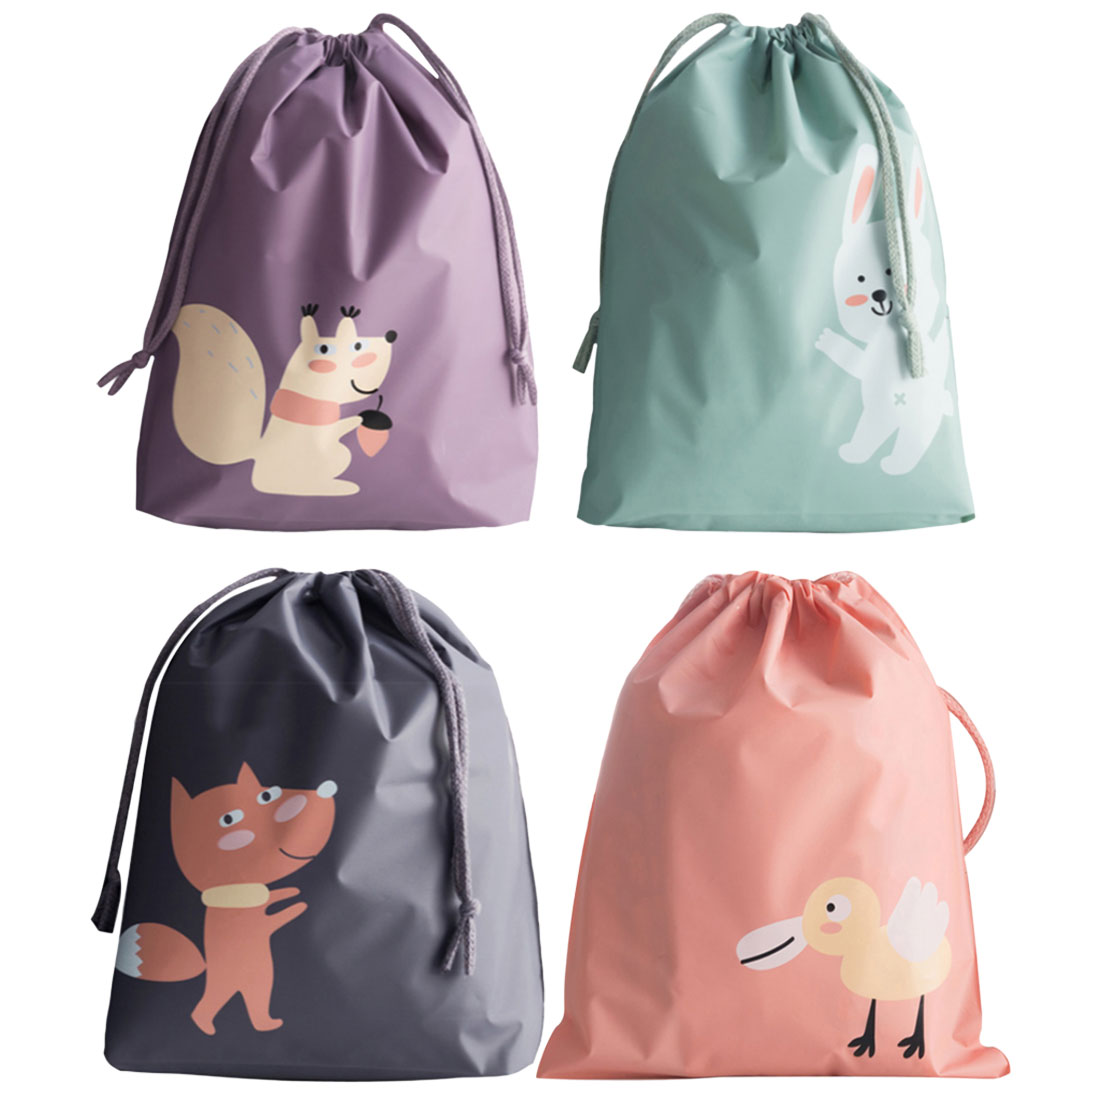 Bunny Cute Puppy Drawstring Portable Storage Shoe Outdoor Travel Bag Dustproof Gift Bags